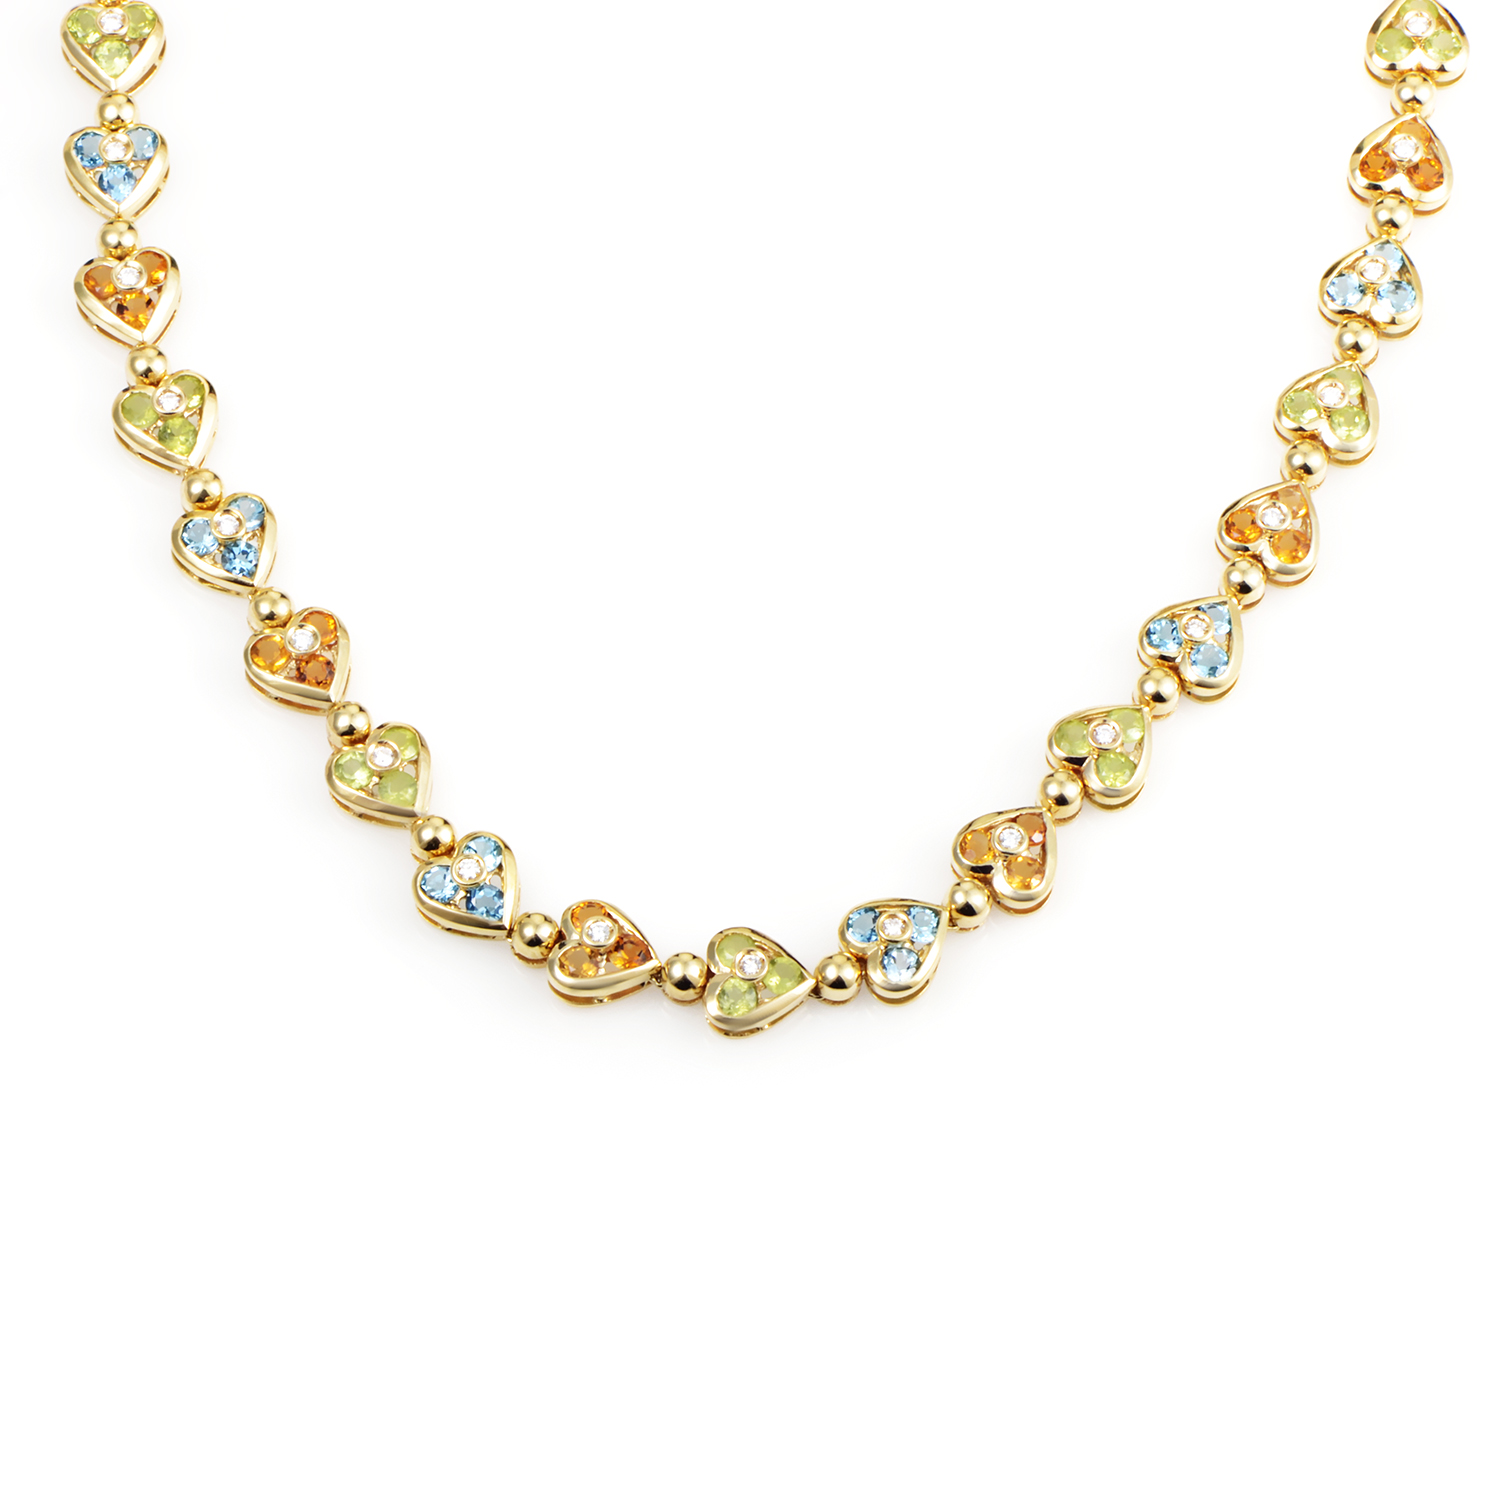 Women's 18K Yellow Gold Diamond & Multi-Gemstone Heart Choker Necklace